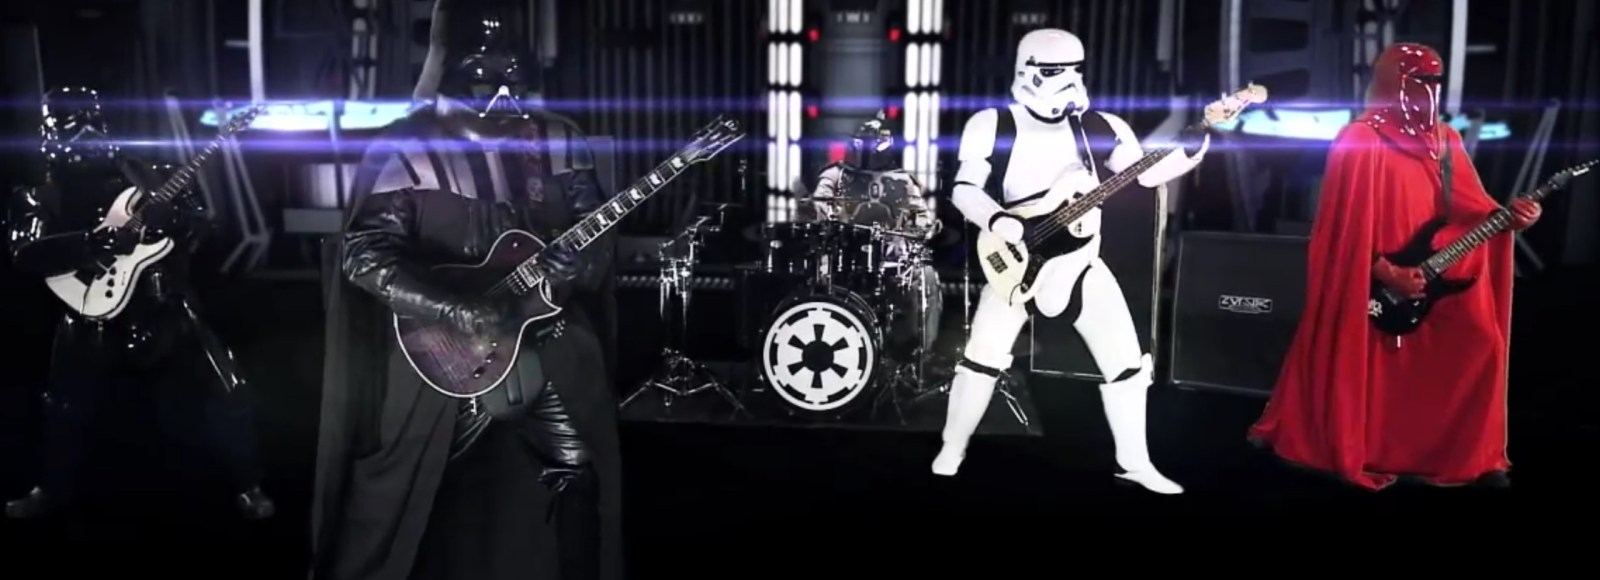 Kickstart This: Galactic Empire Wants to Perform Live